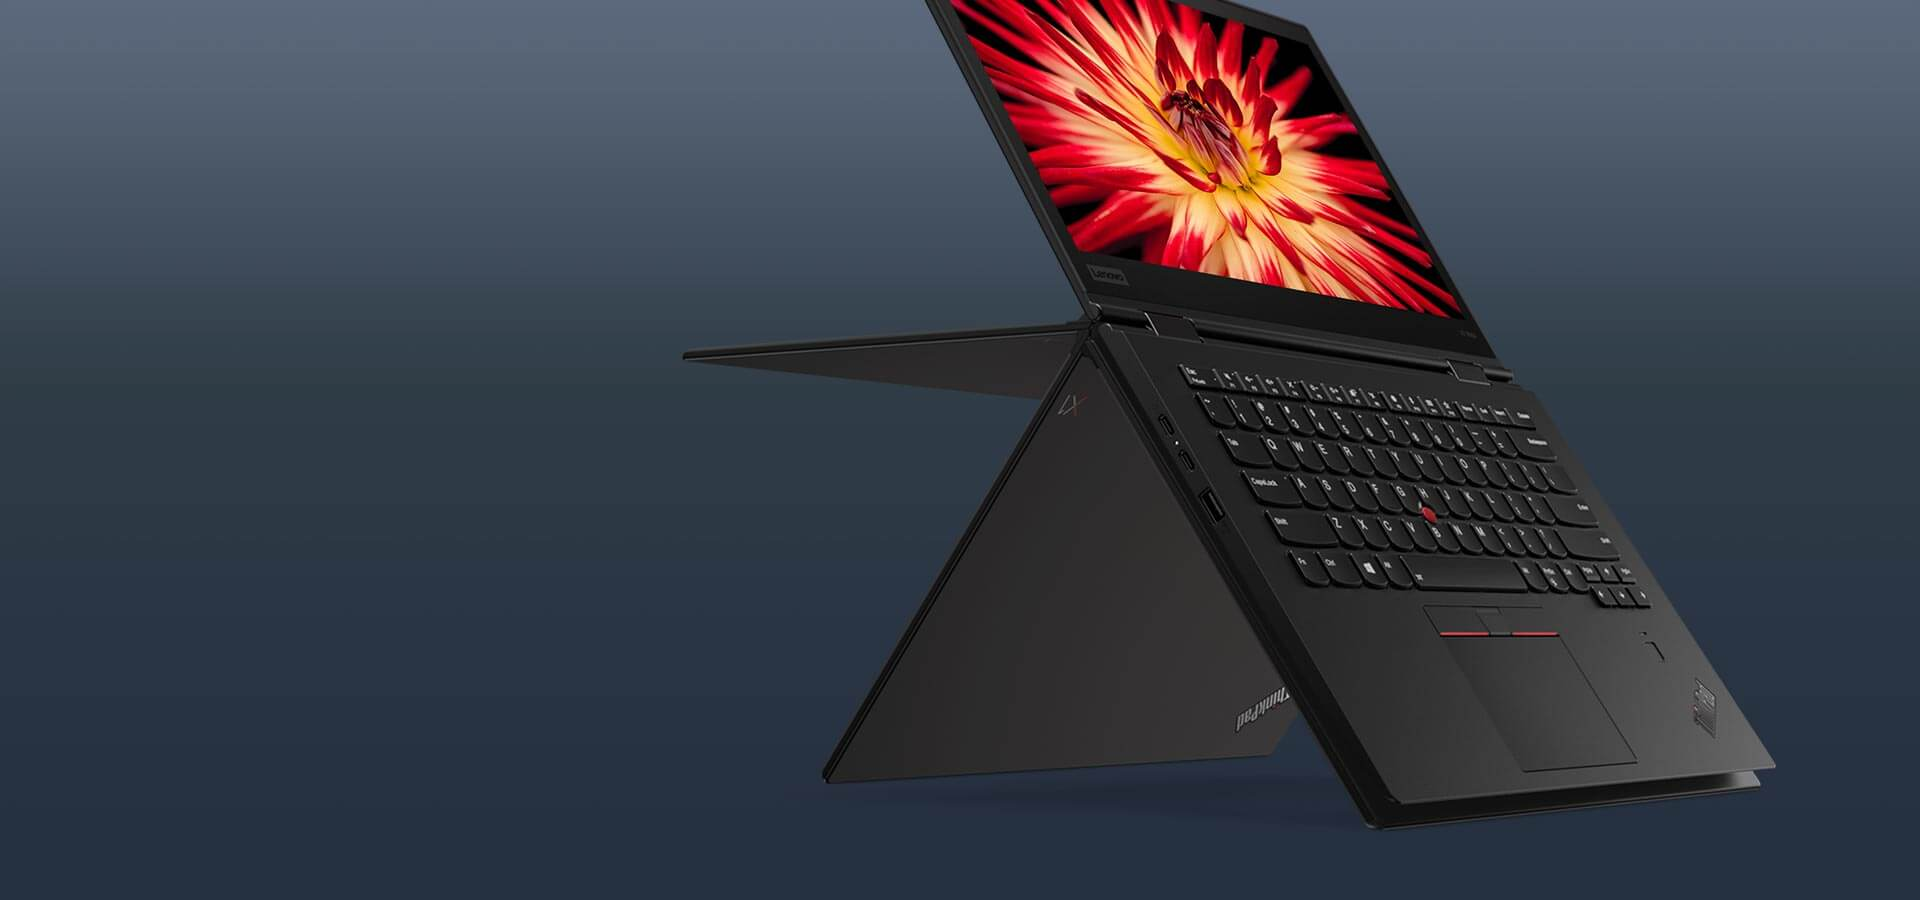 Business Laptops | Buy ThinkPad, ThinkCentre PC Online